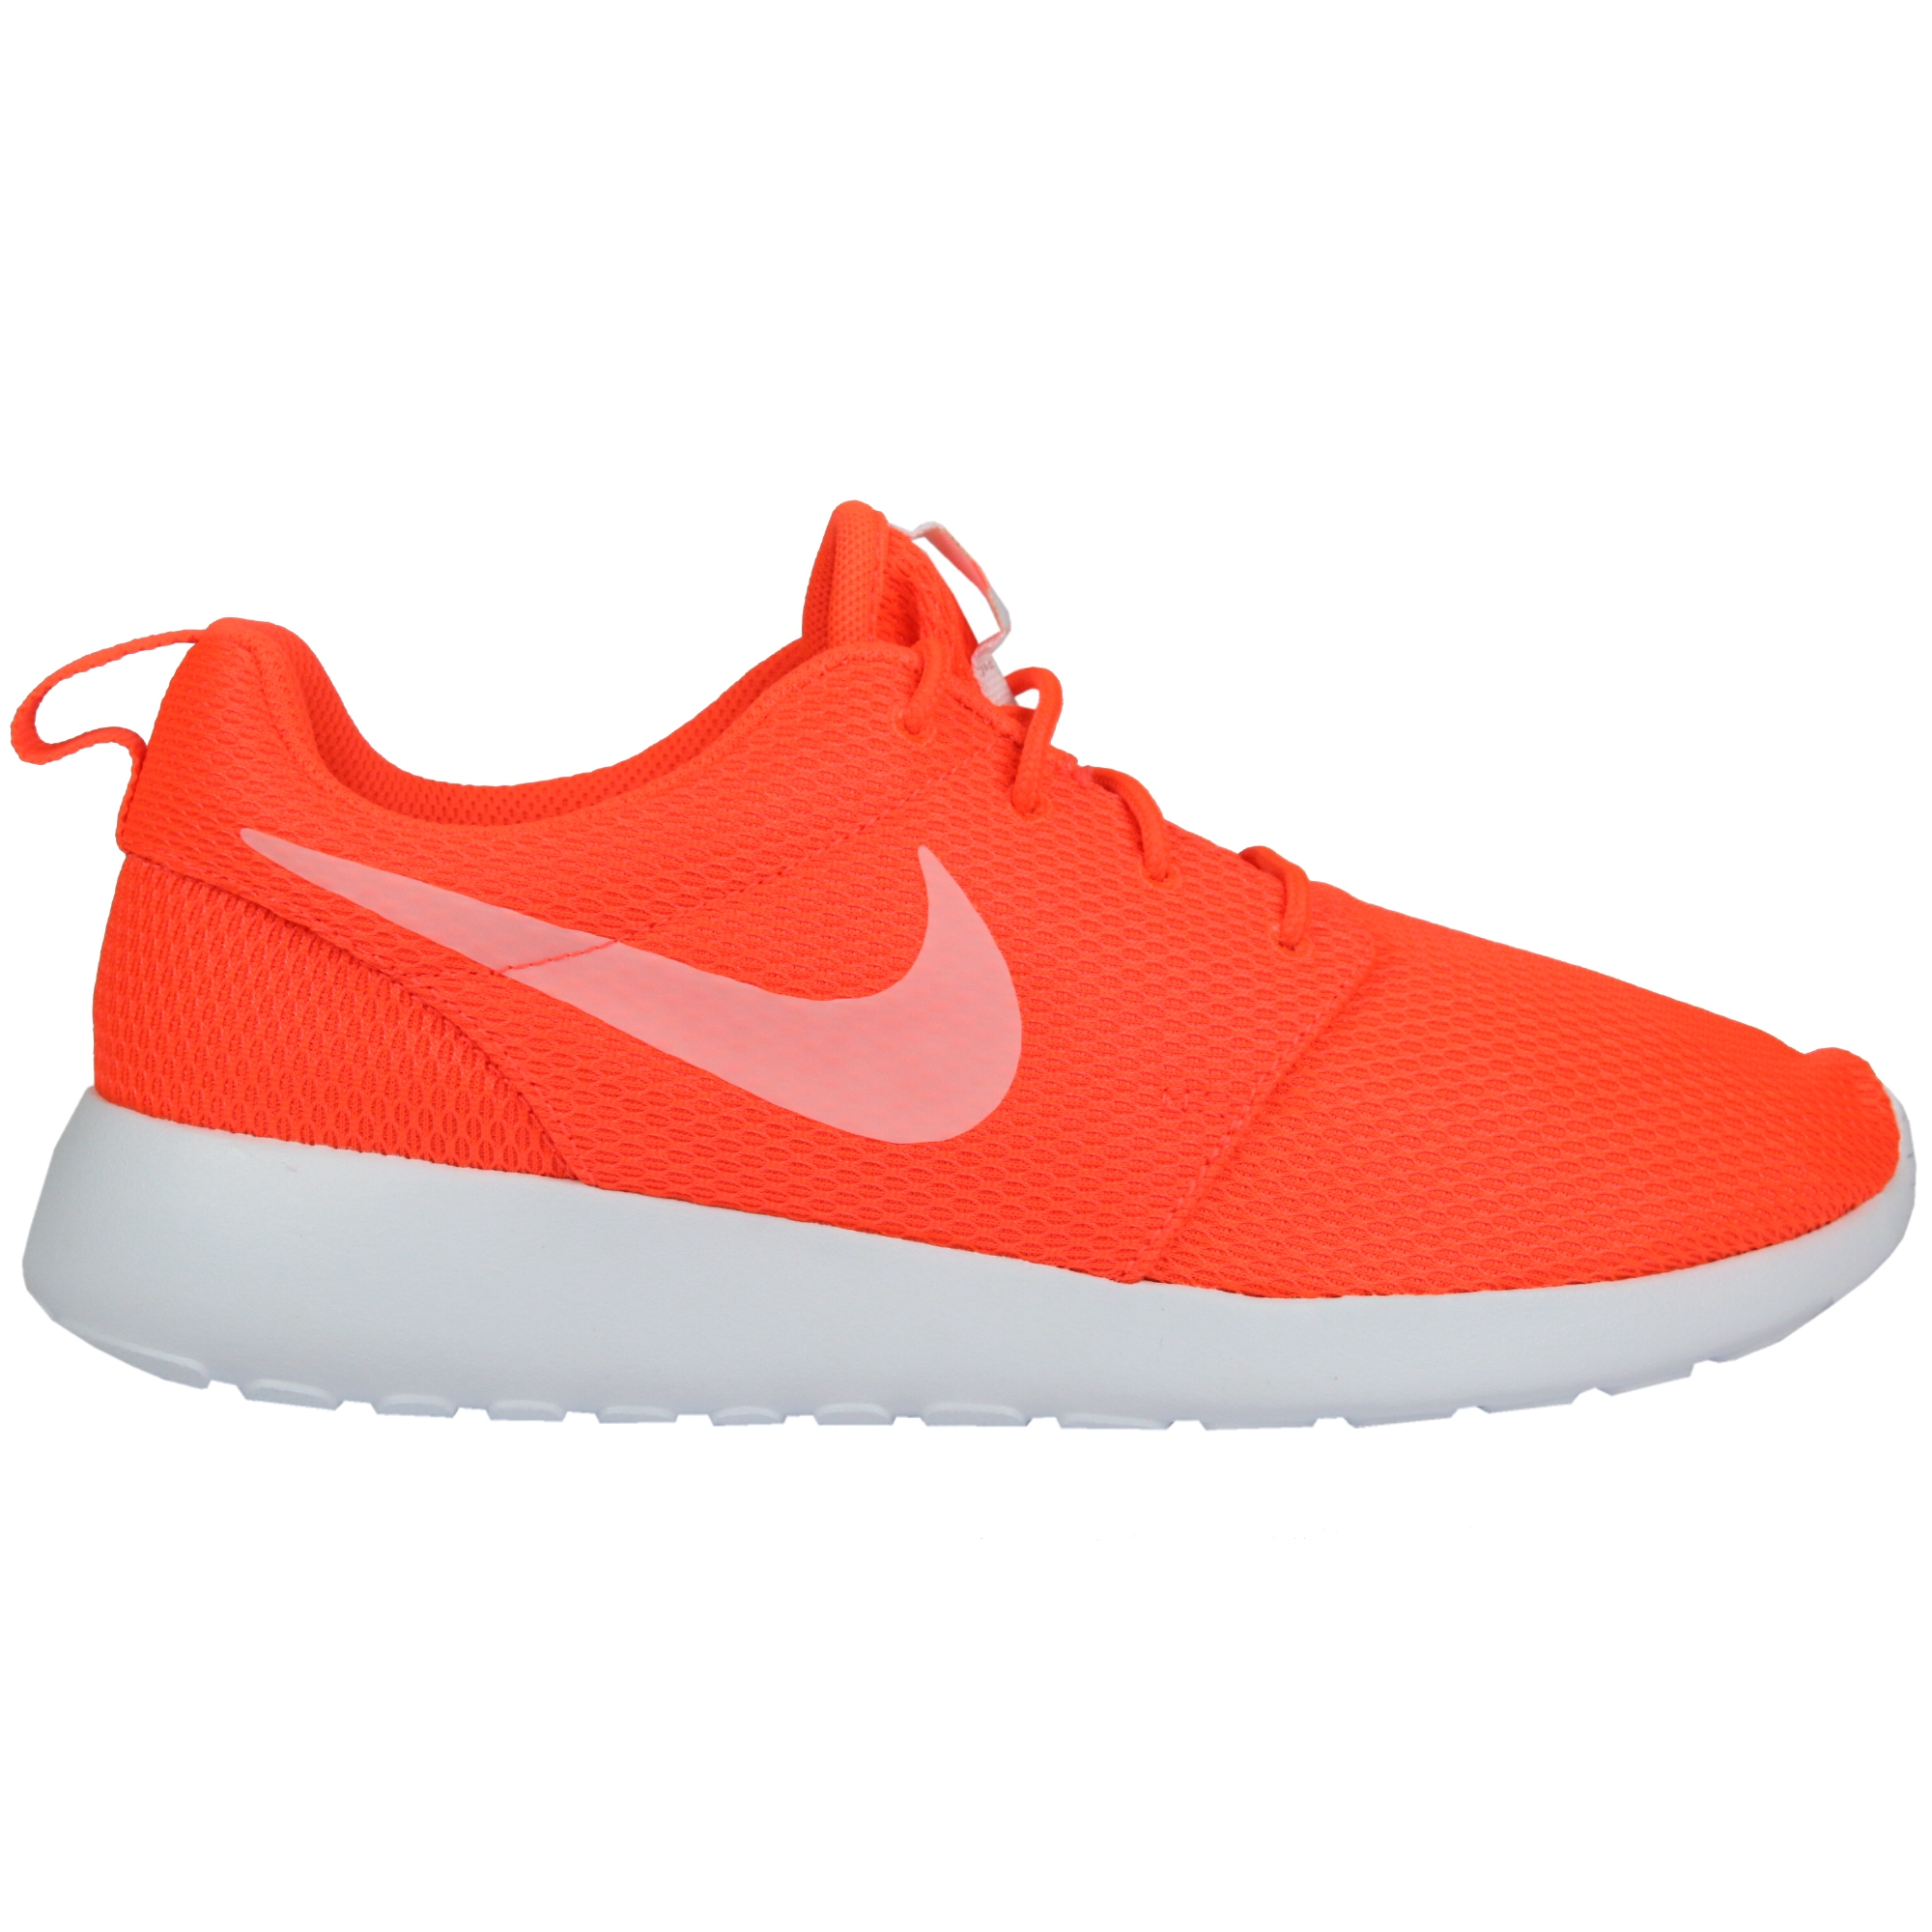 nike roshe one schuhe sneaker turnschuhe rosherun run damen. Black Bedroom Furniture Sets. Home Design Ideas